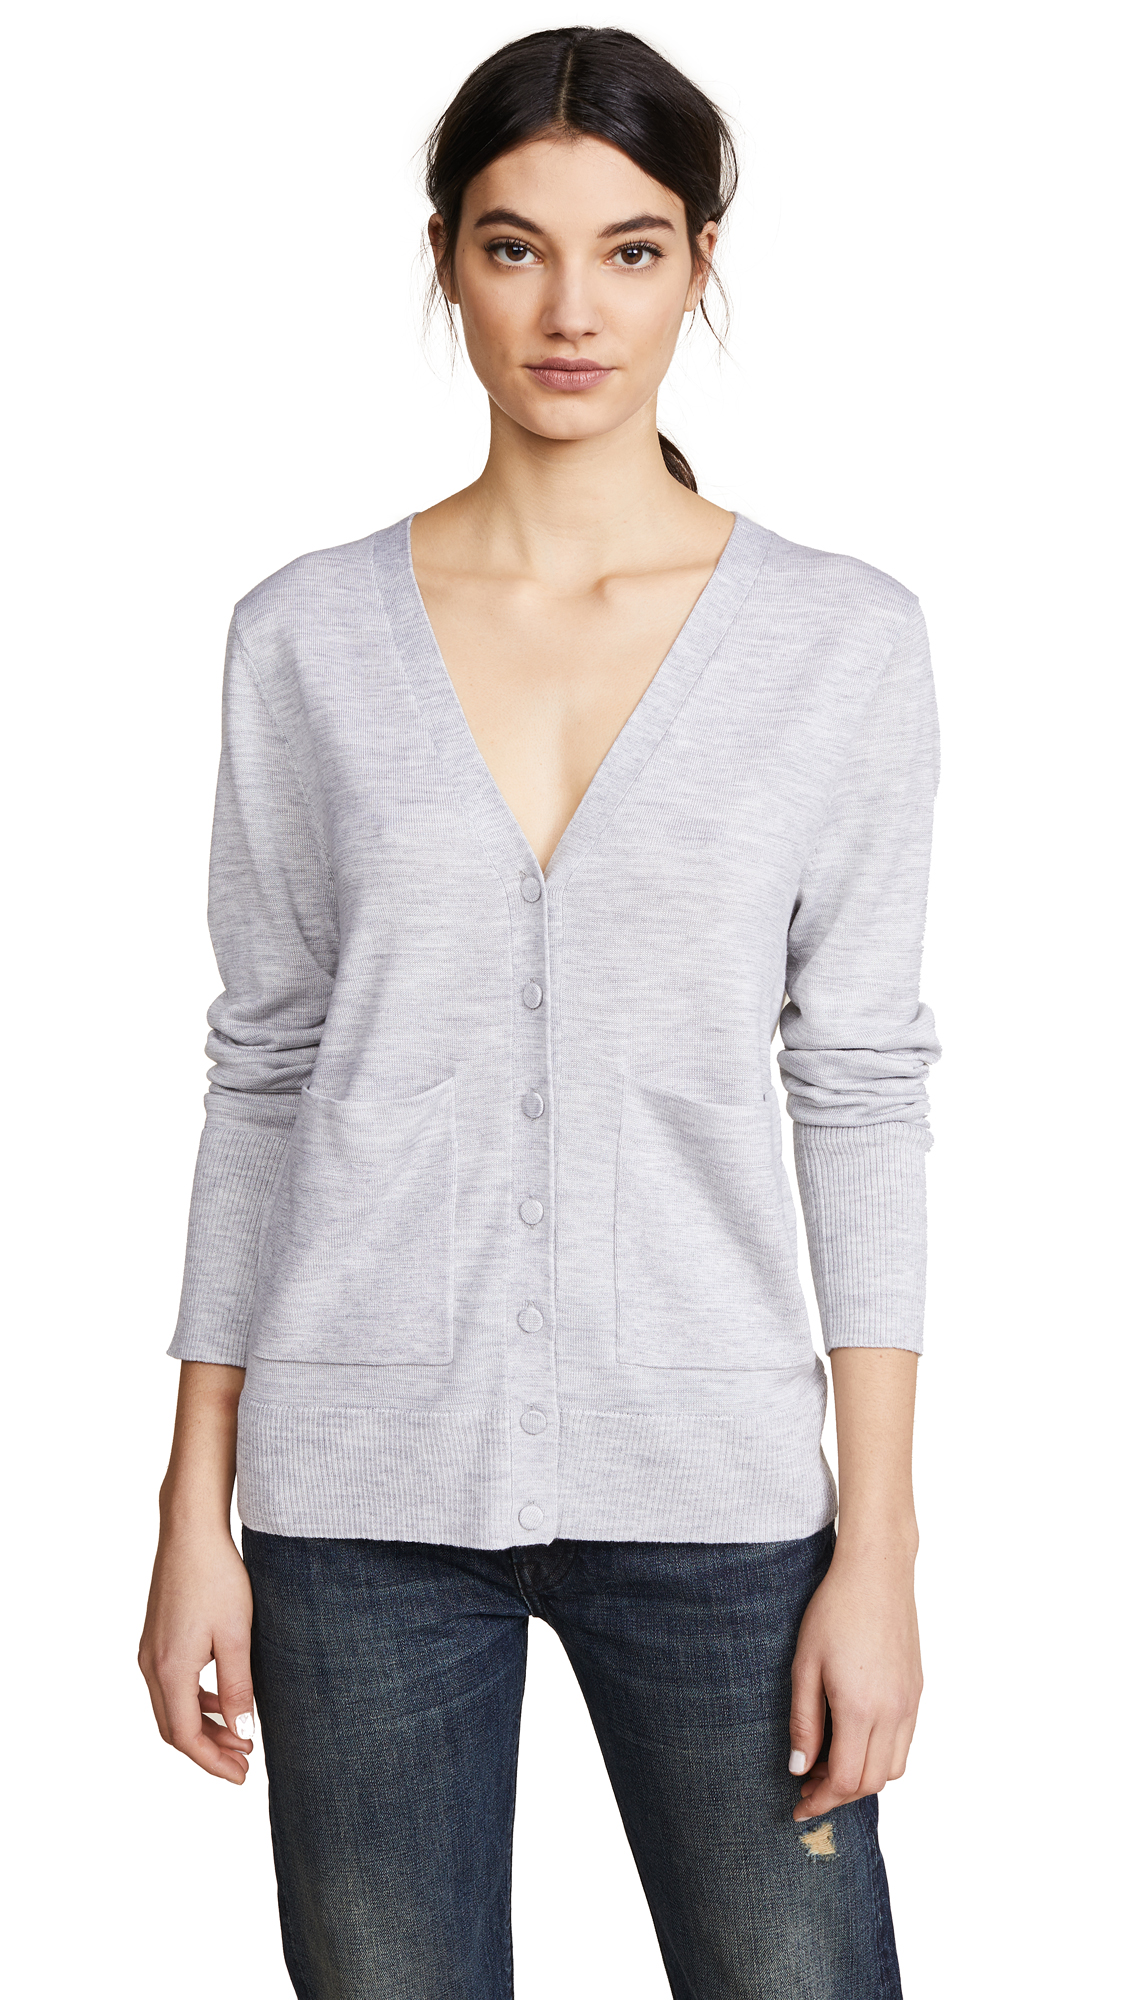 Protagonist Patch Pocket Cardigan